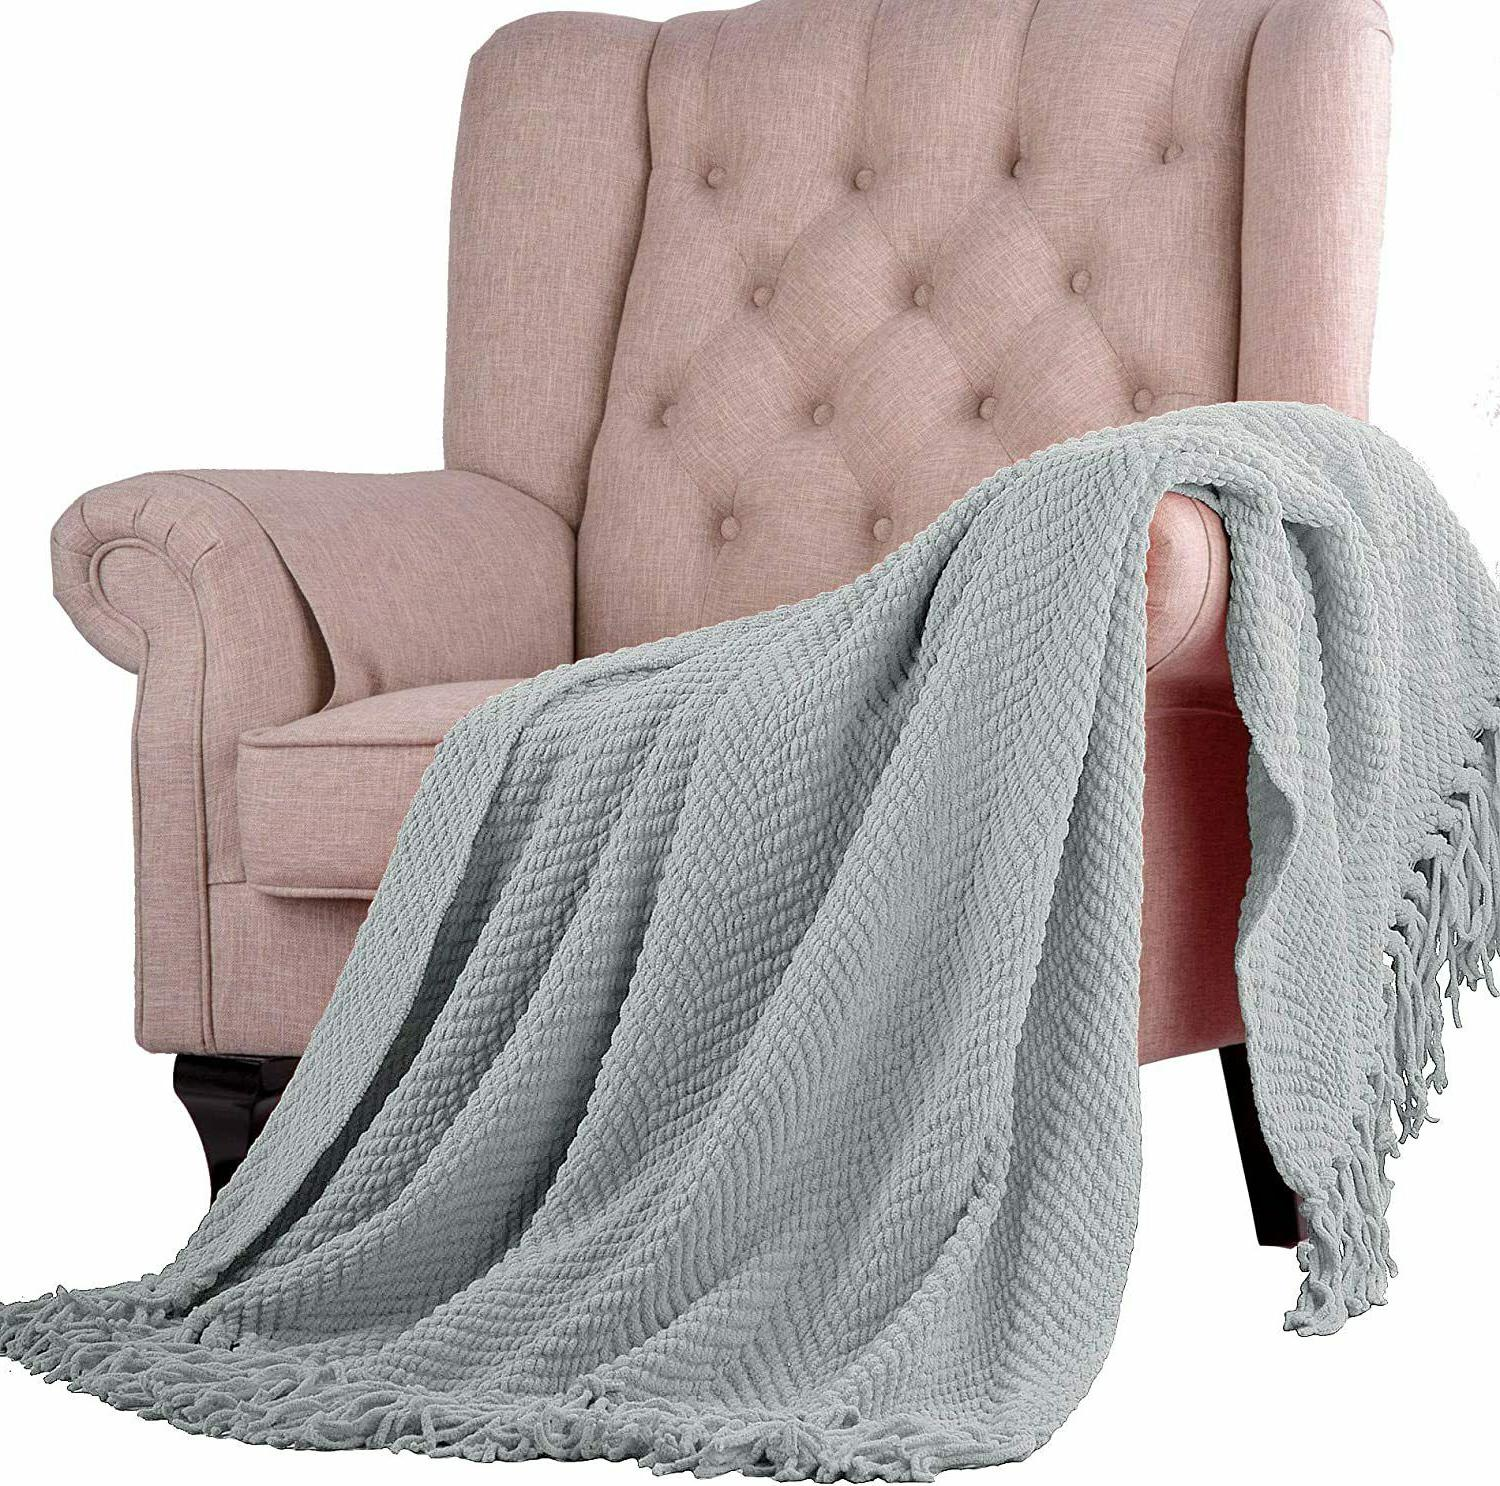 knitted tweed throw couch cover blanket 50x60